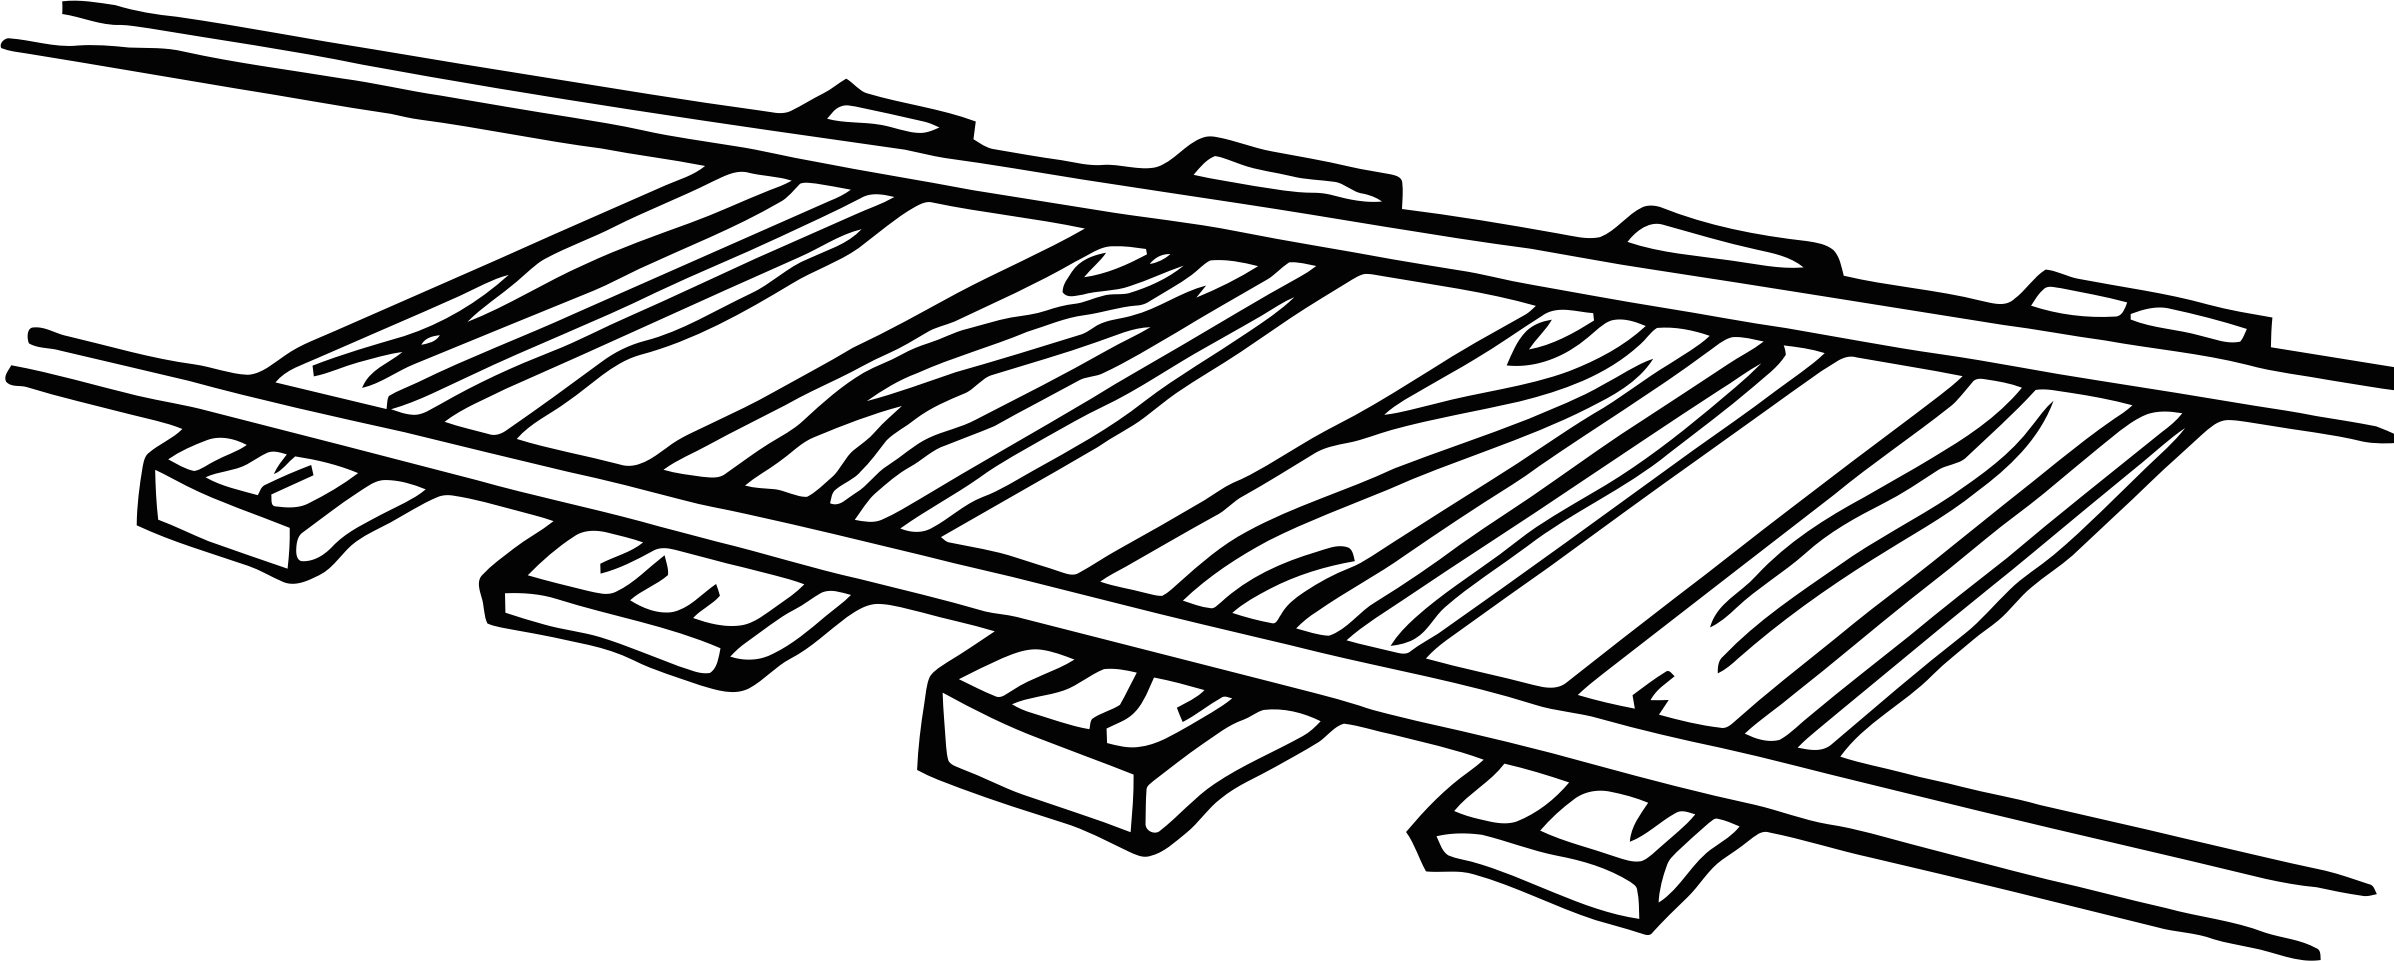 Railways clipart black and white #15